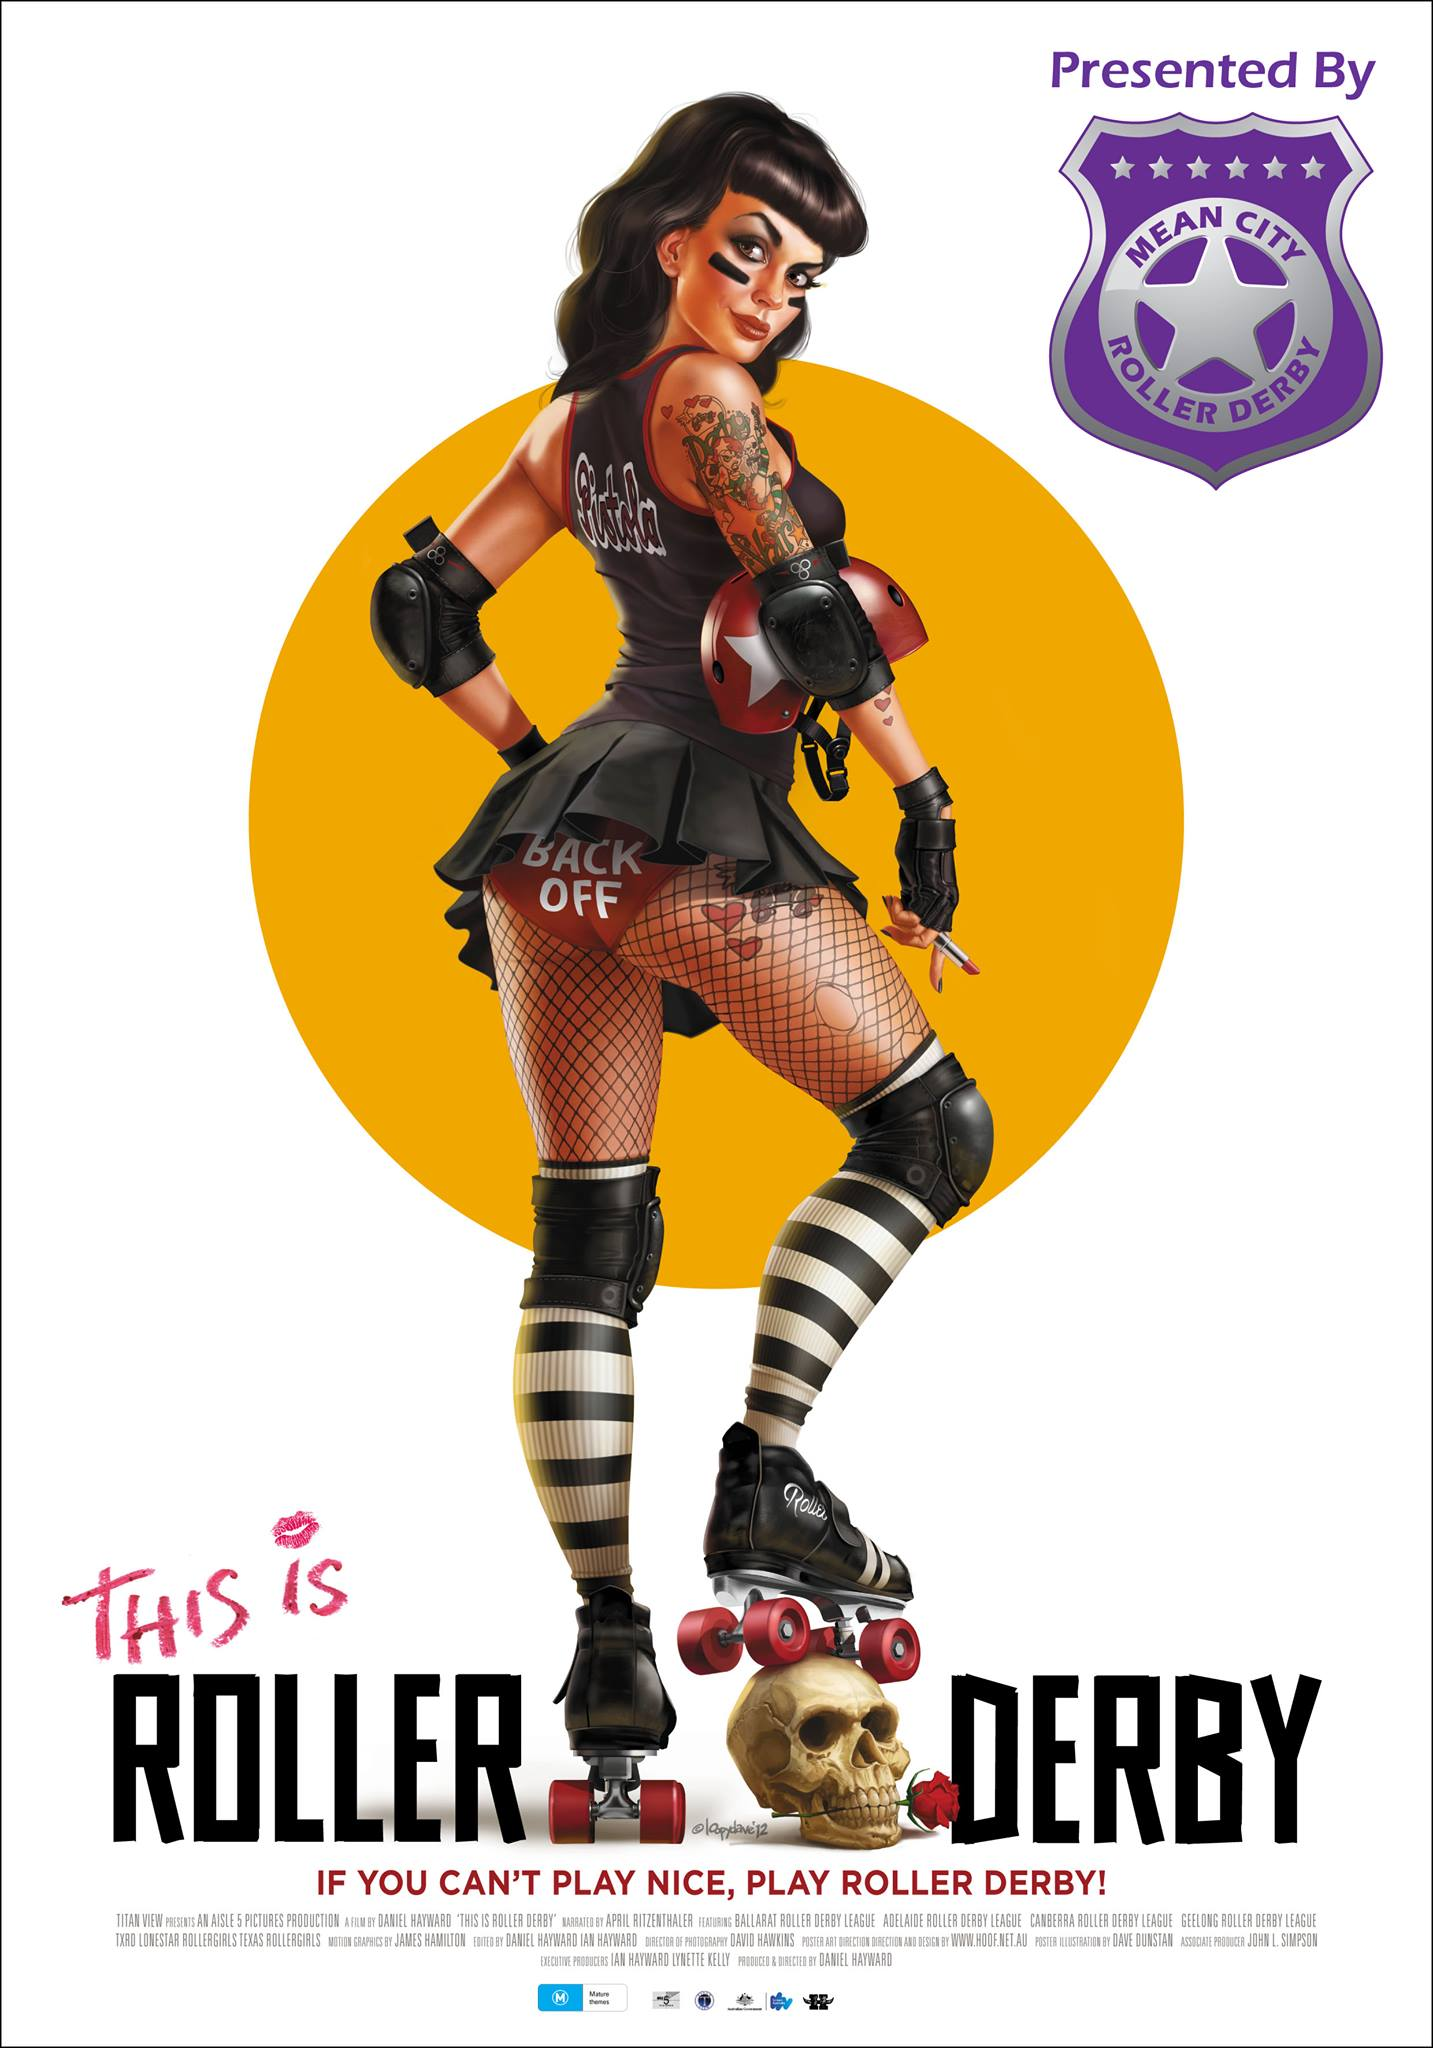 Image courtesy of Mean City Roller Derby